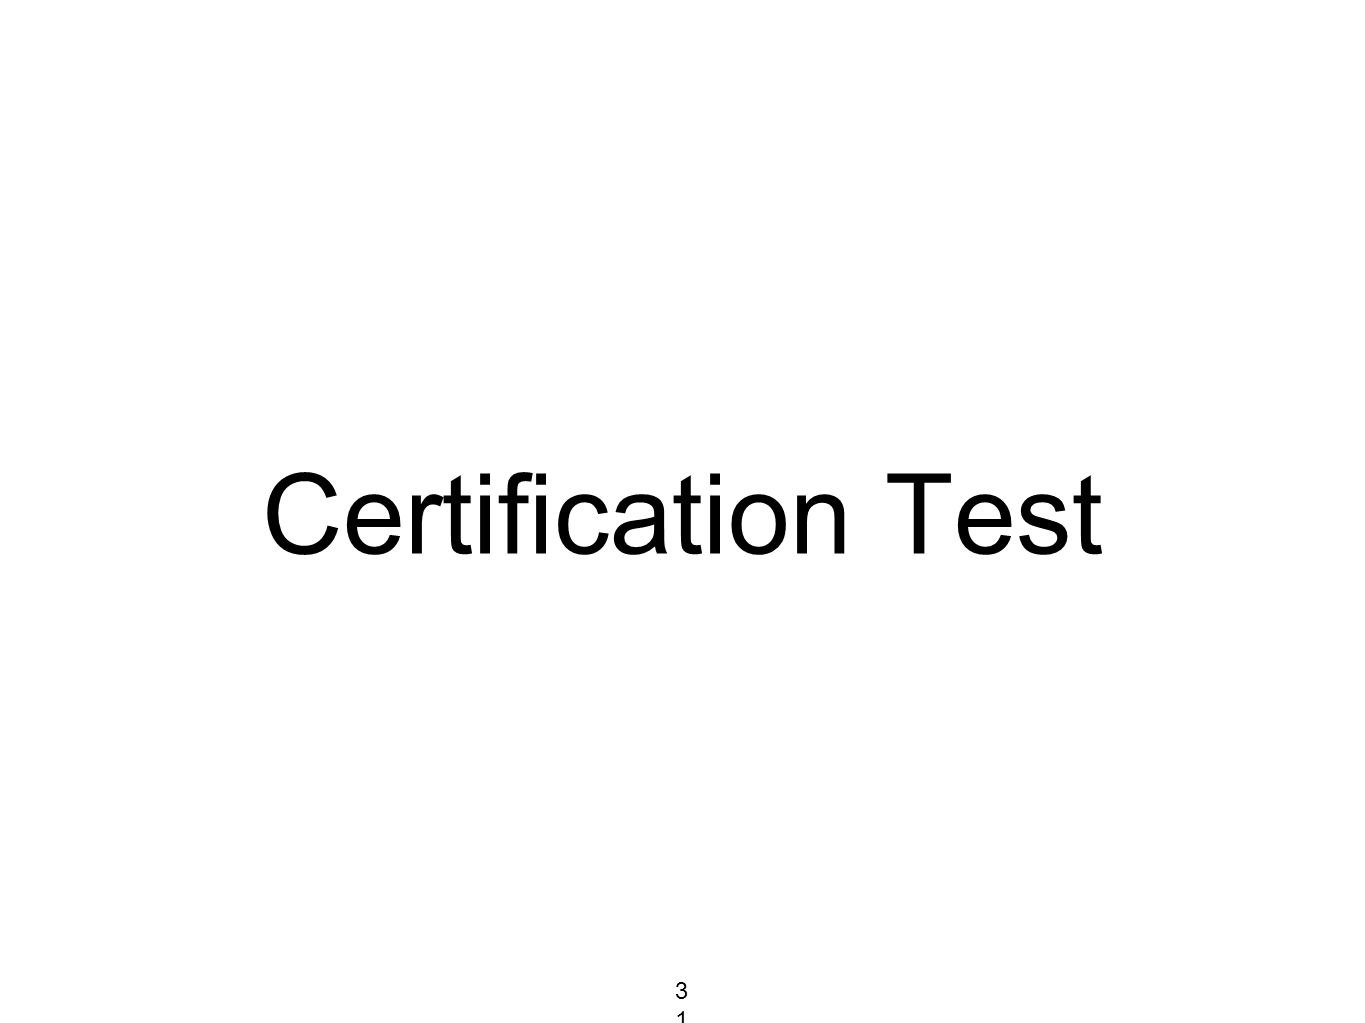 Certification Test 318318318